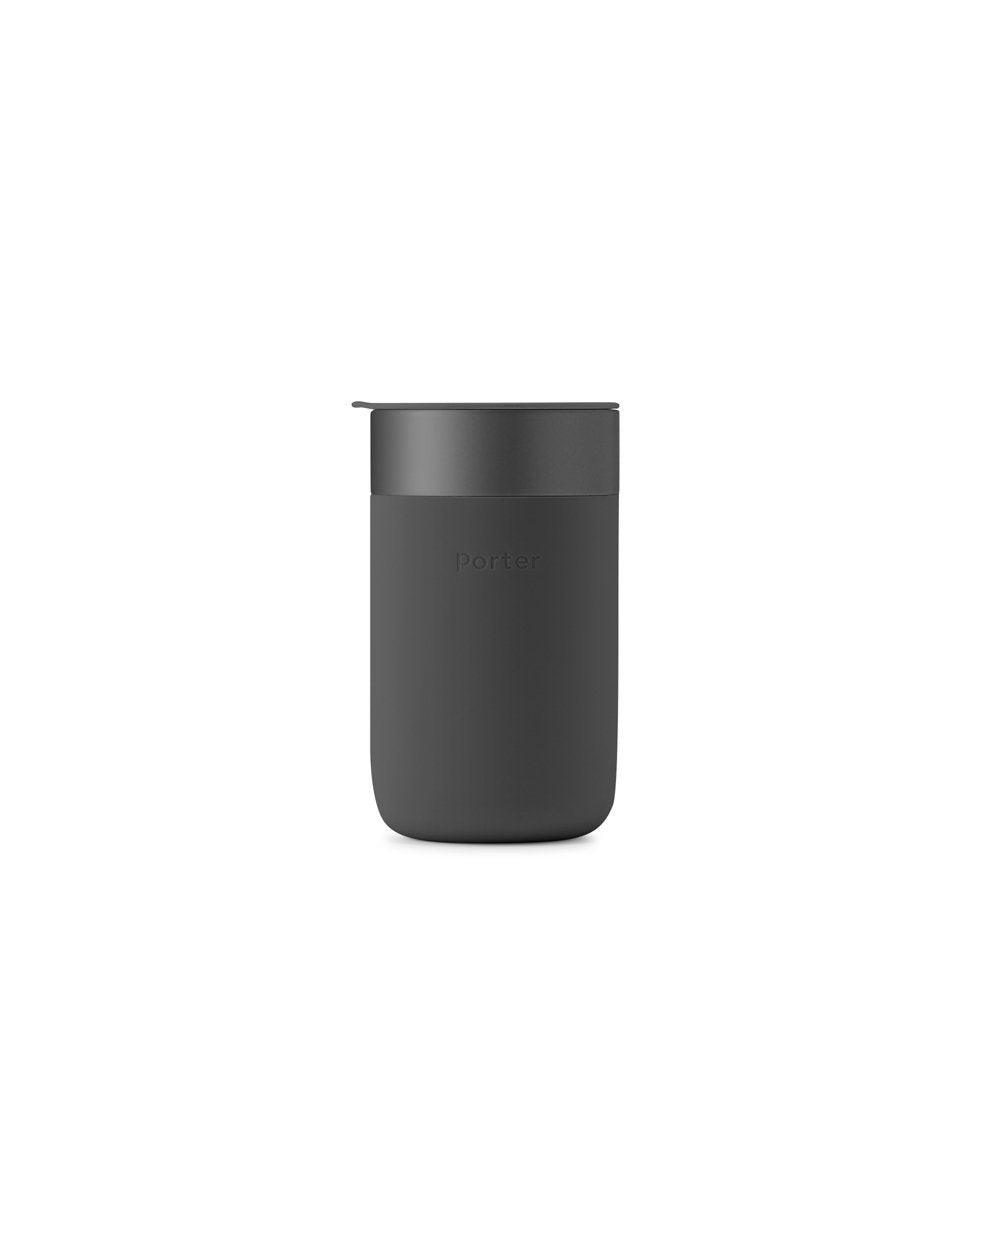 Porter Travel Mug Charcoal 16 oz.